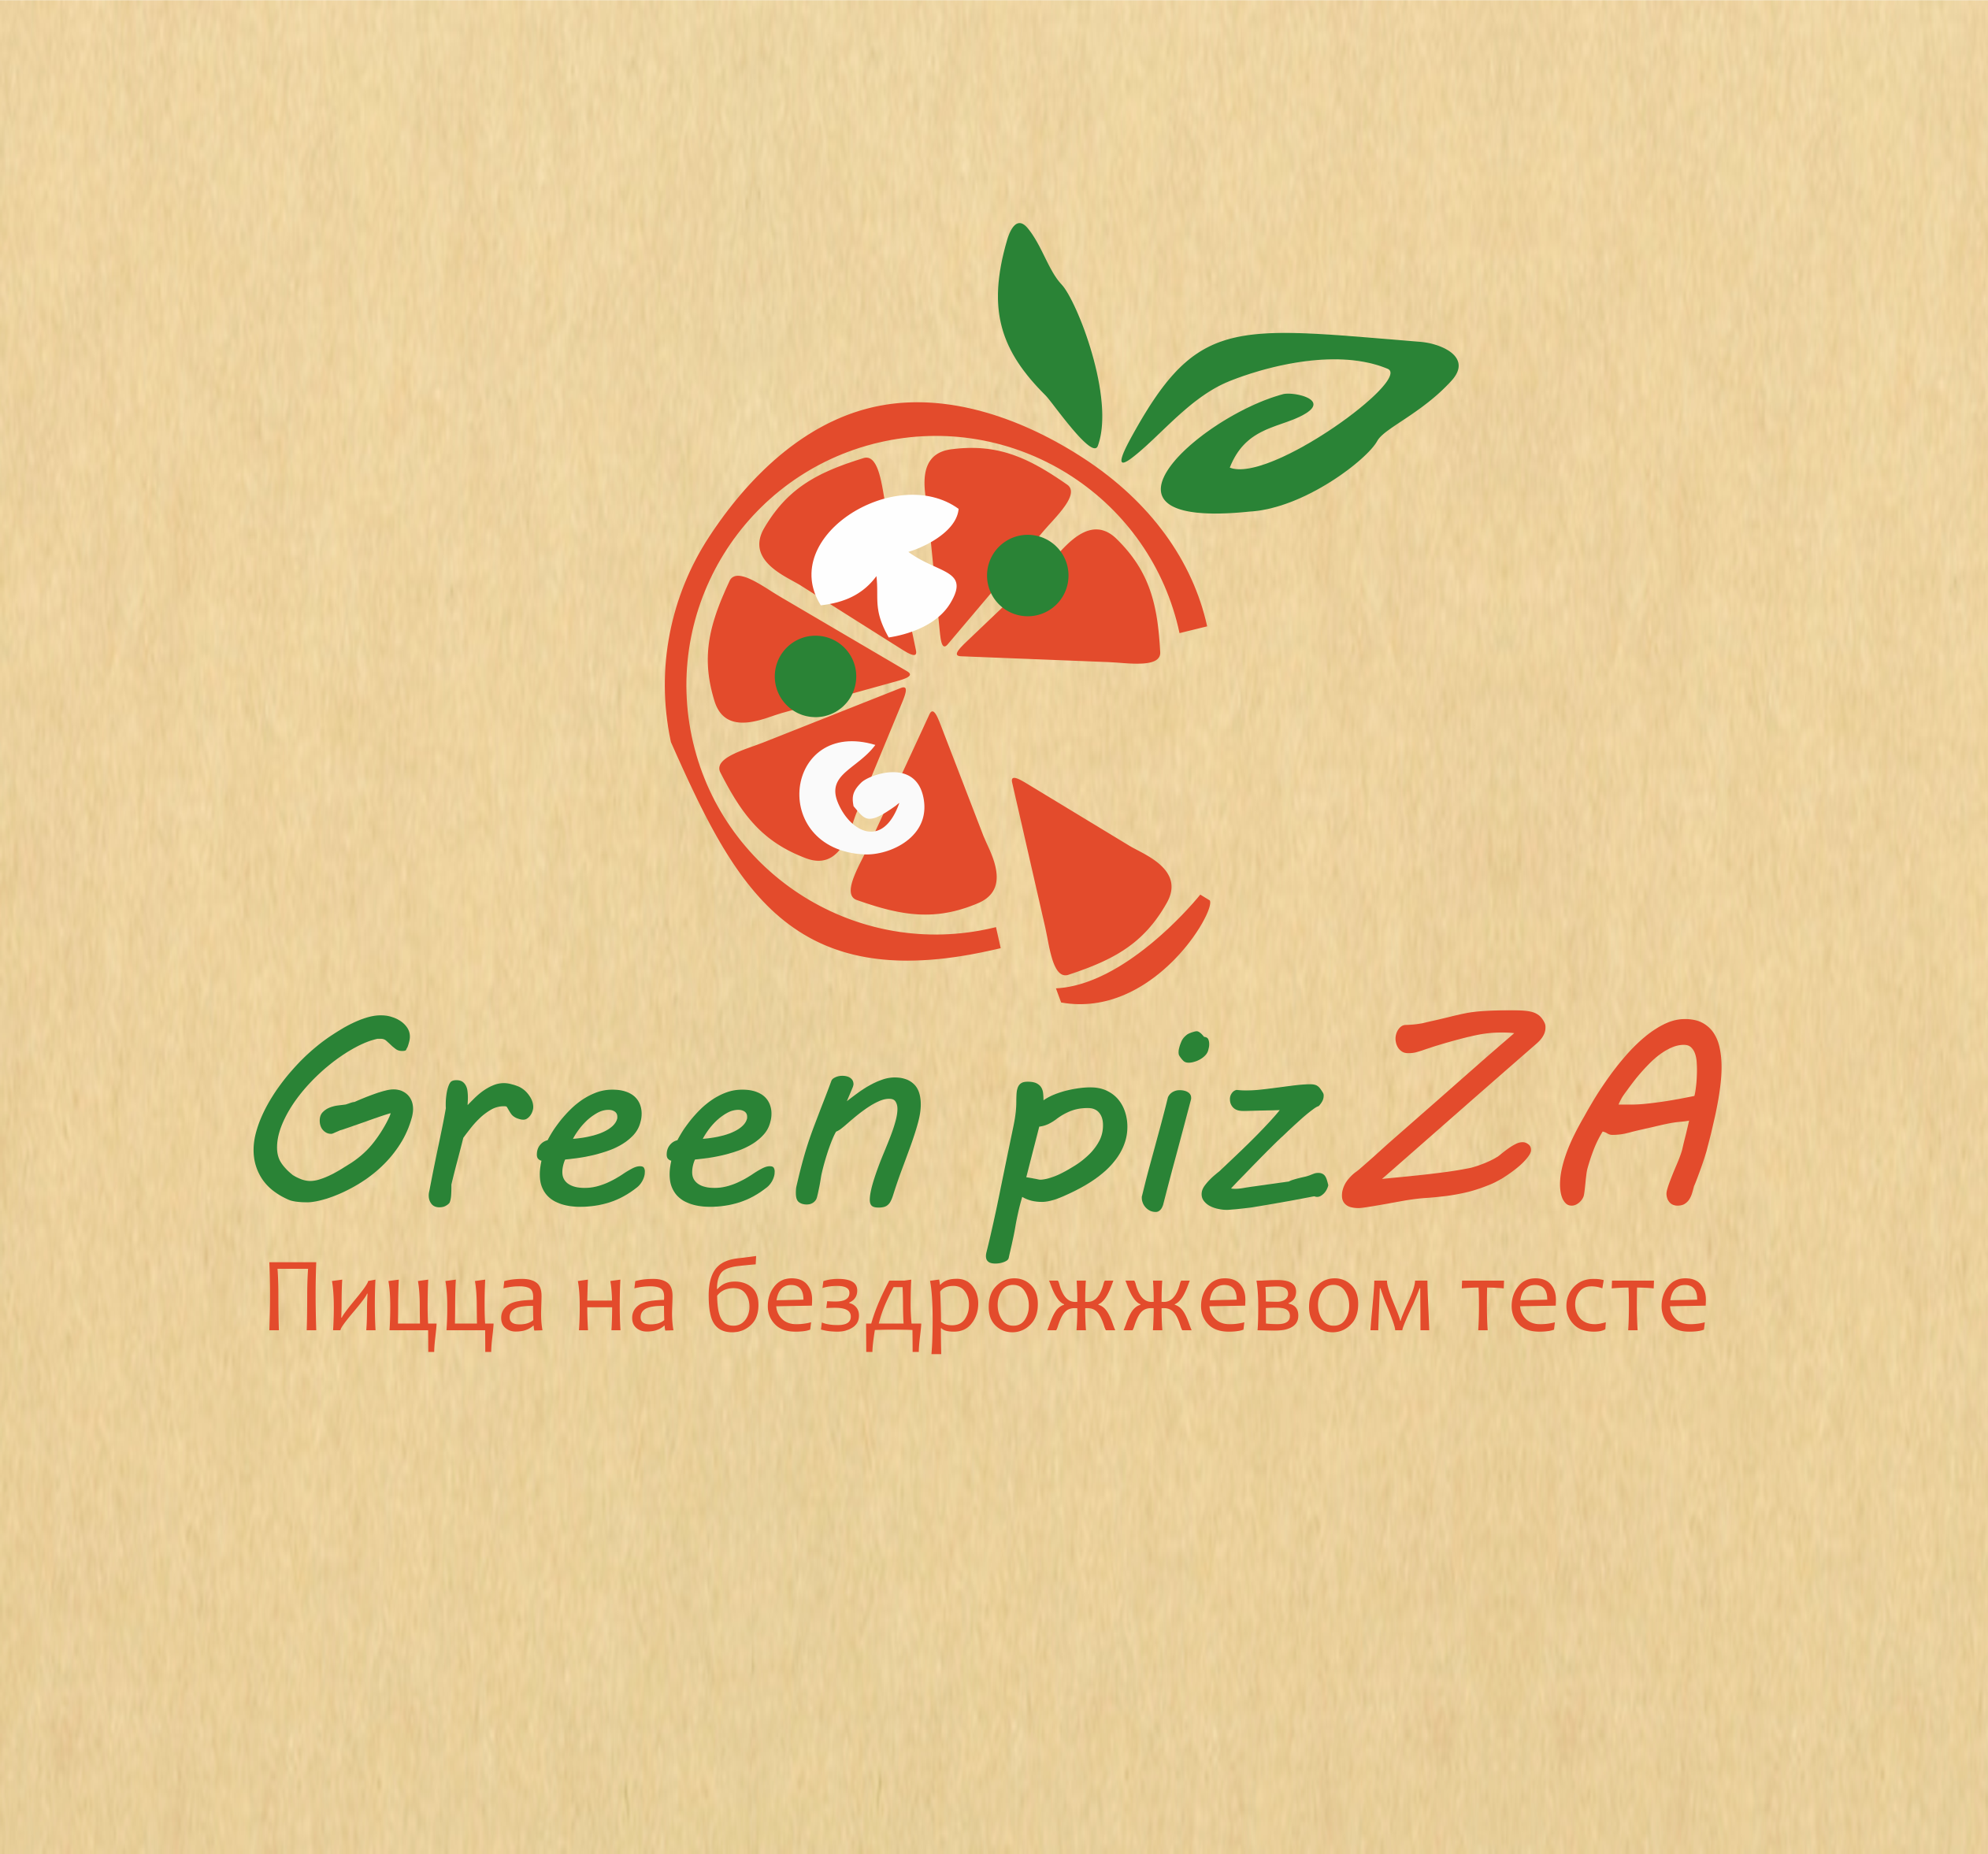 Green pizza (Green pizza )